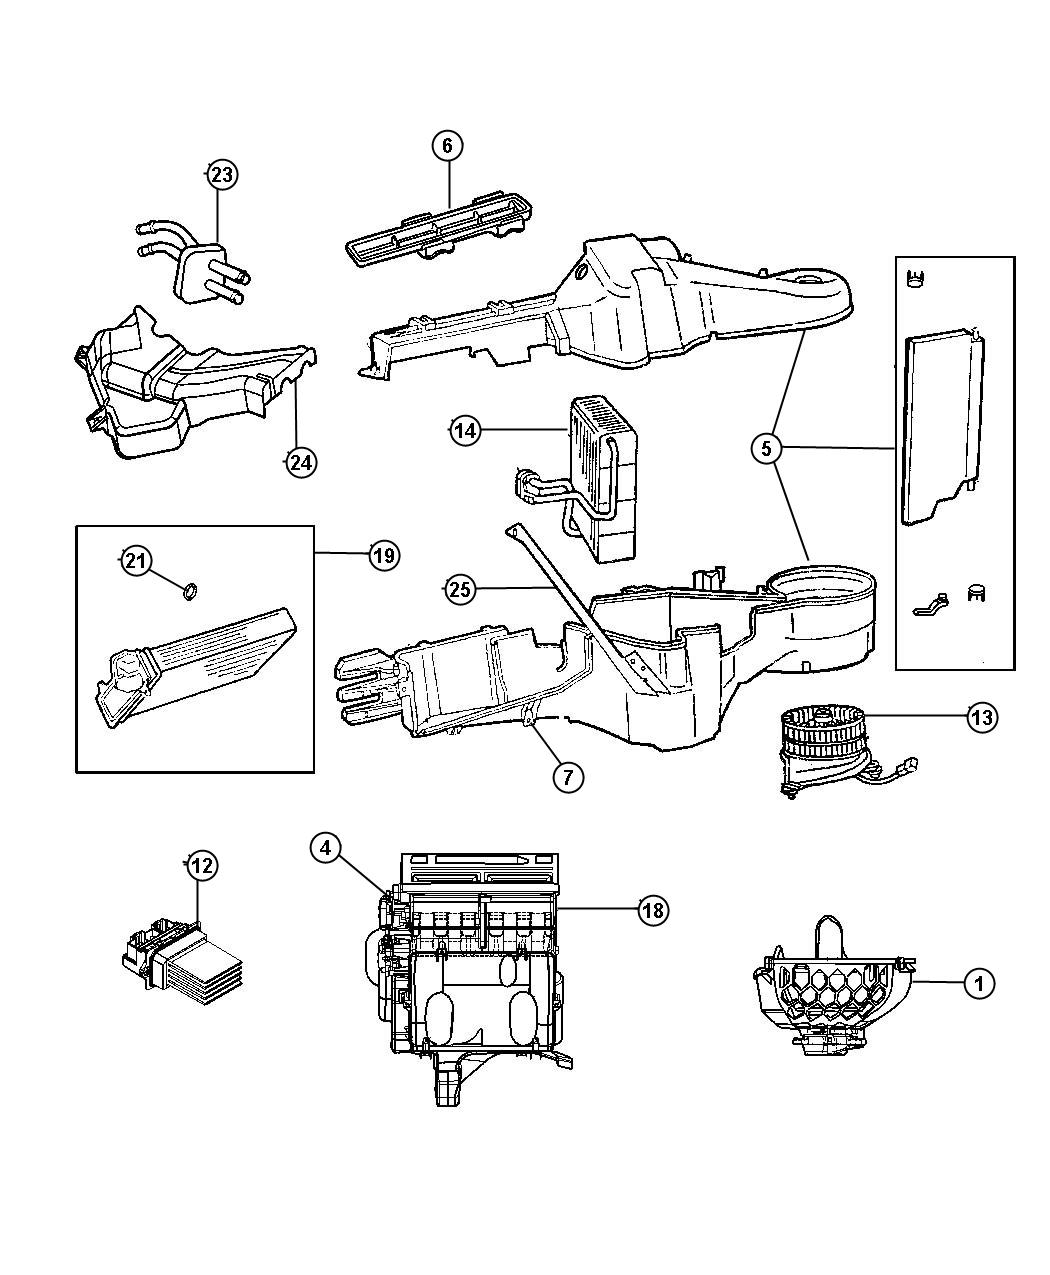 2004 Chrysler Pacifica Seal kit. Used for: a/c and heater